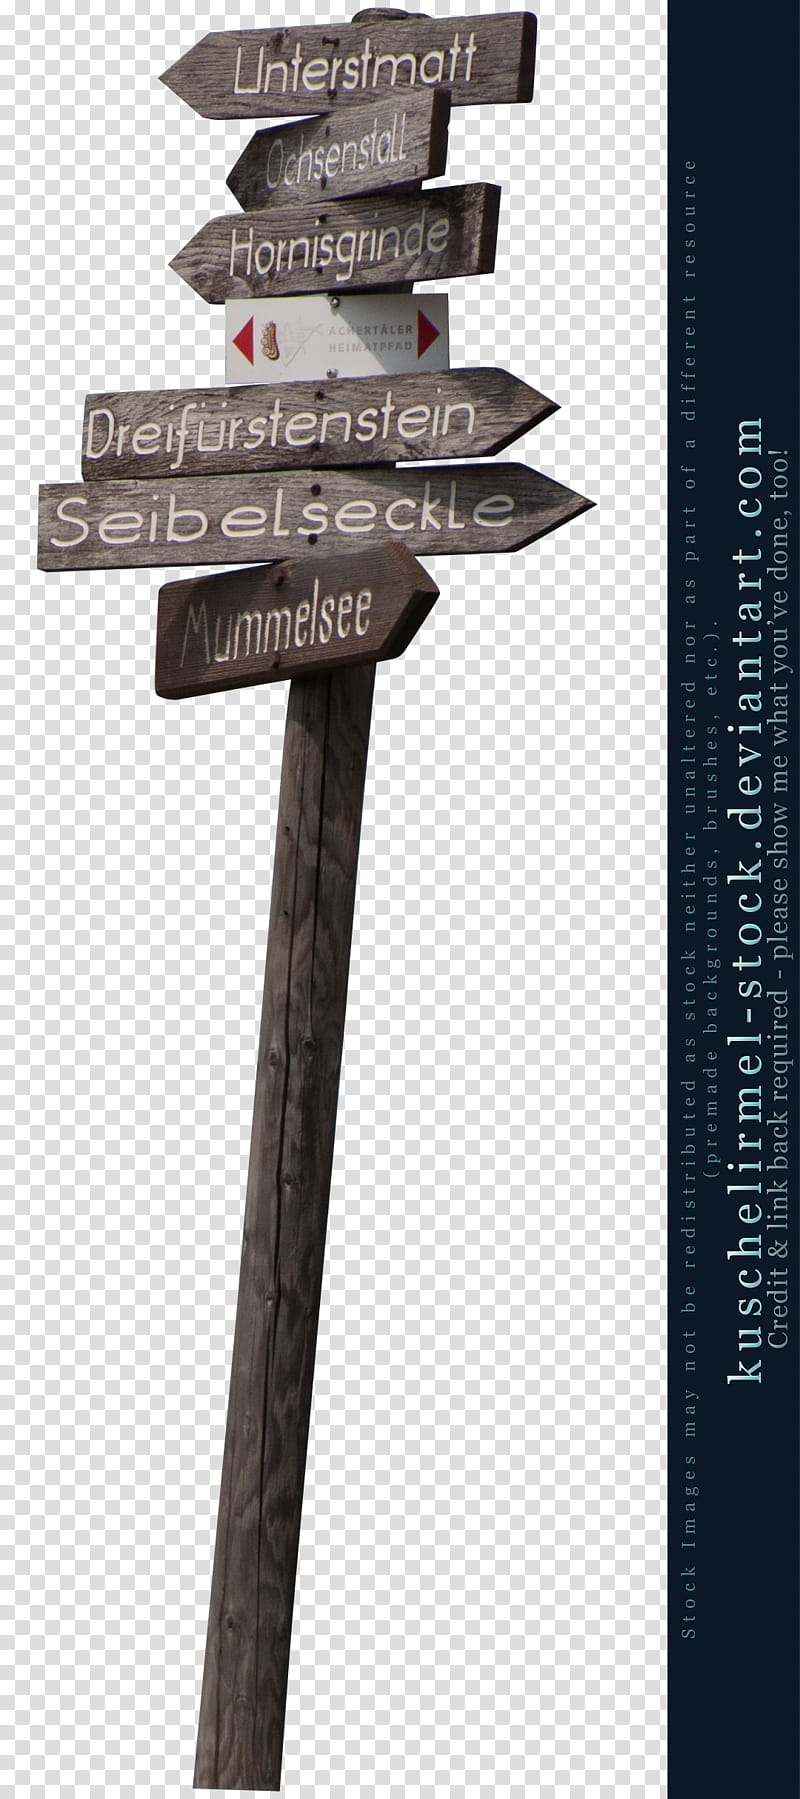 Wooden Signs Cut Out, brown wooden street signage.